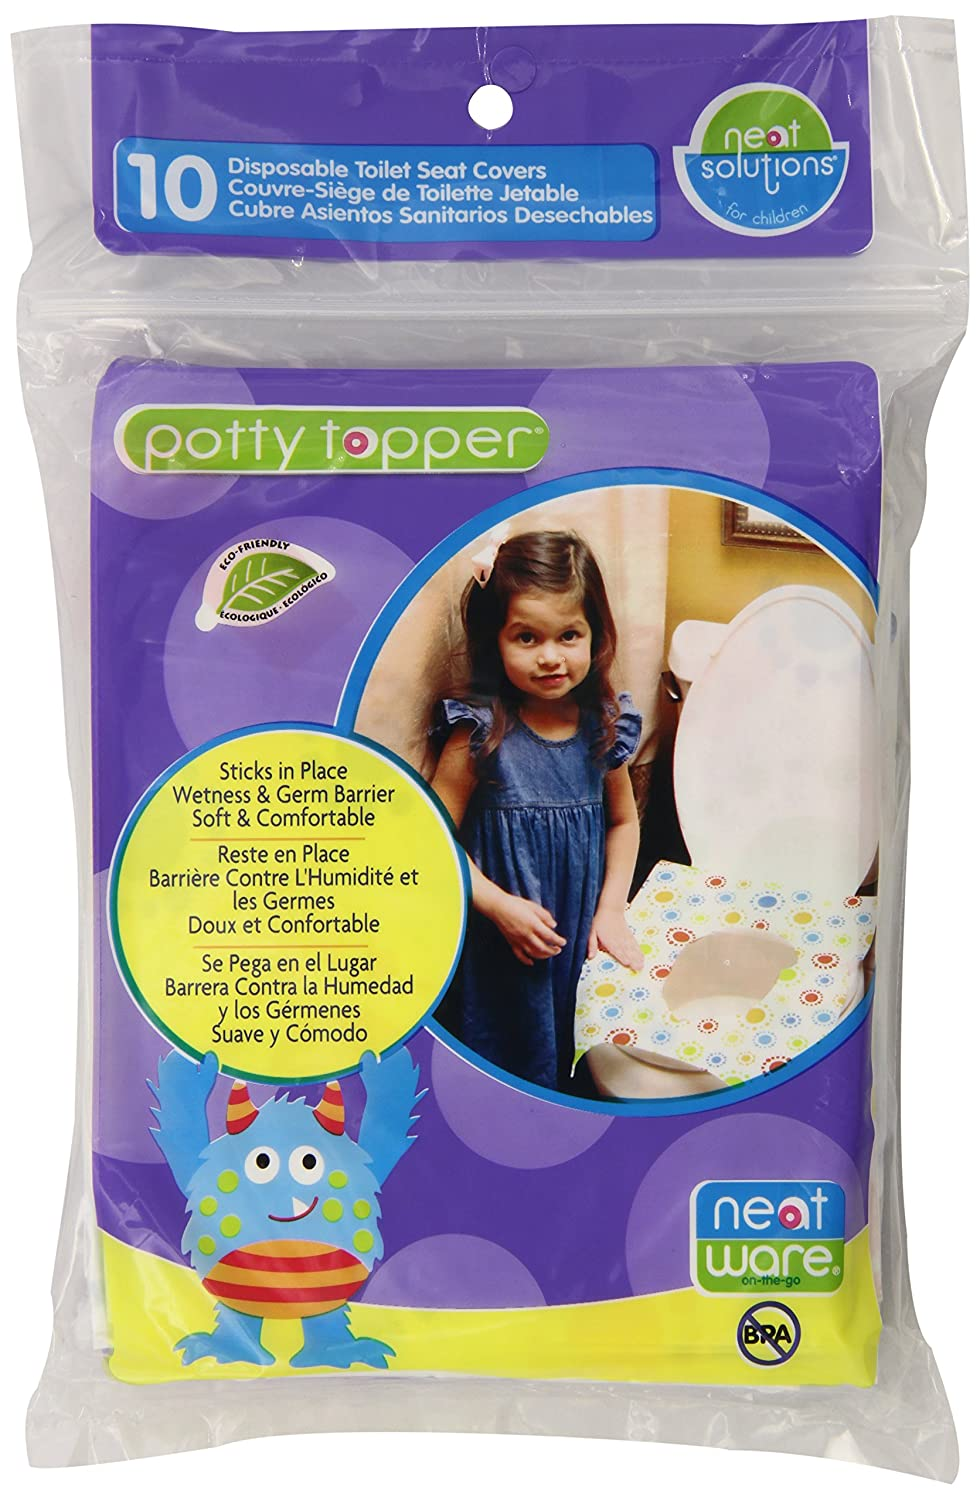 Neat Solutions Neat-Ware Potty Topper, 40-Count 10047